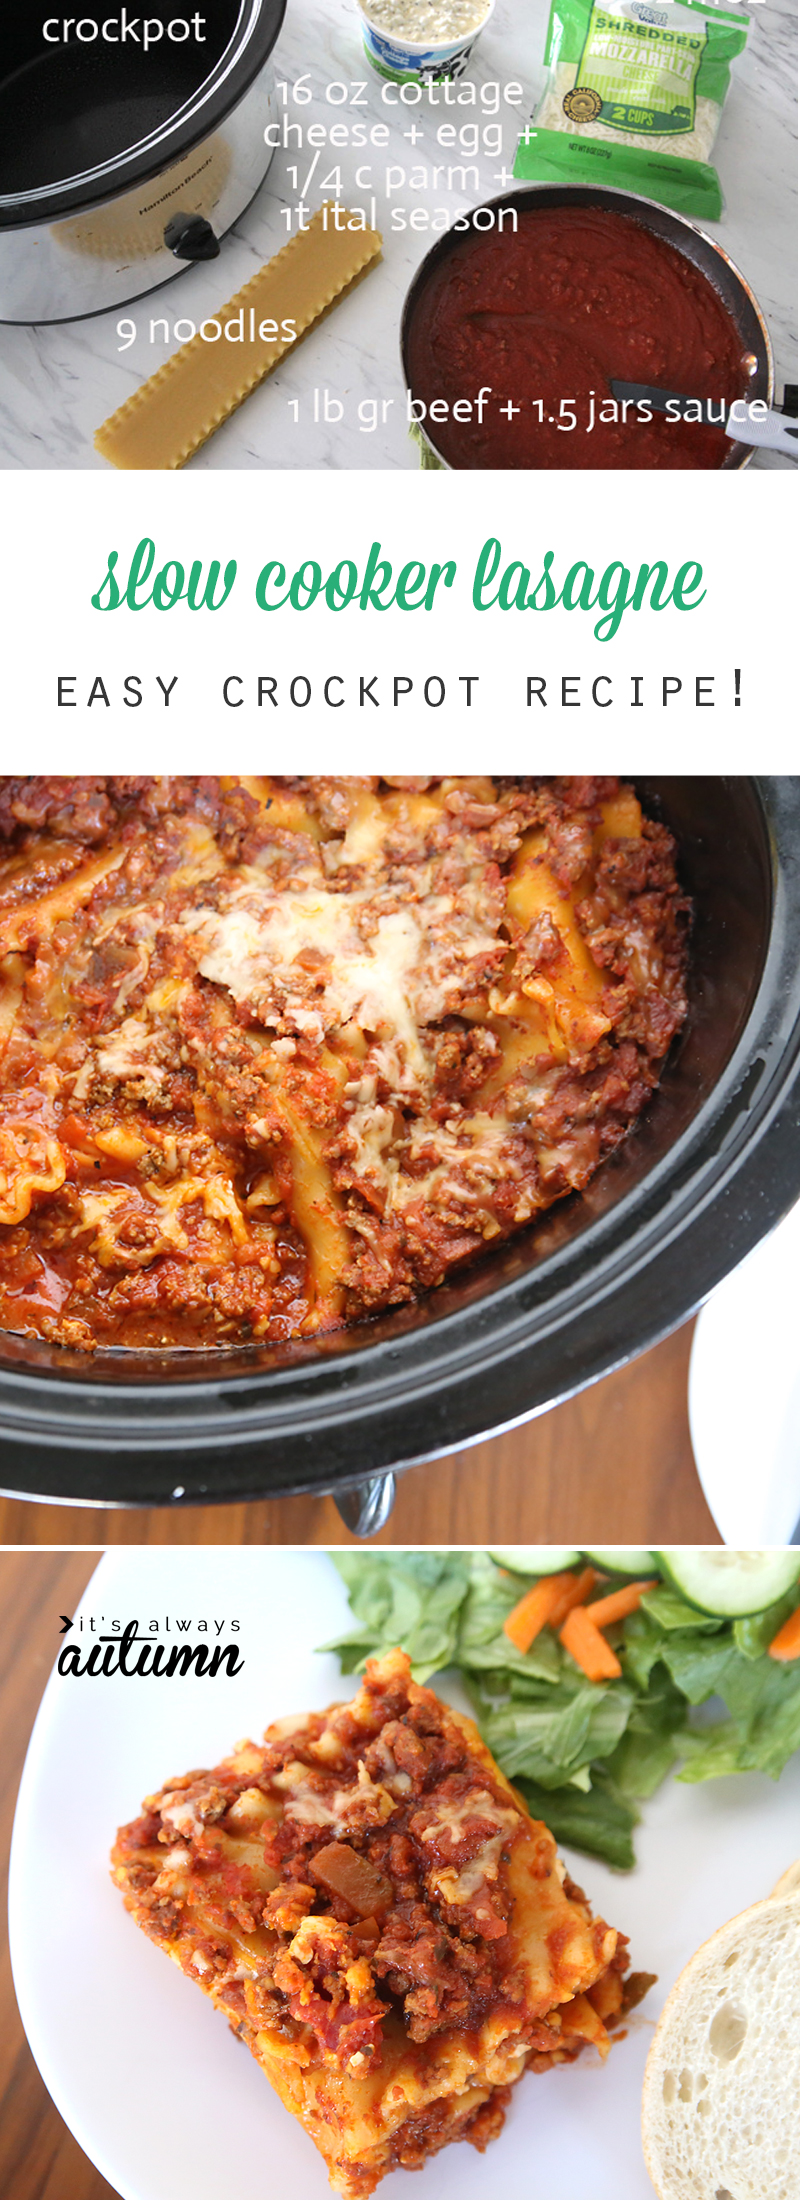 Did You Know You Can Make Lasagne In The Crockpot? Itu0027s Super Easy And  Tastes